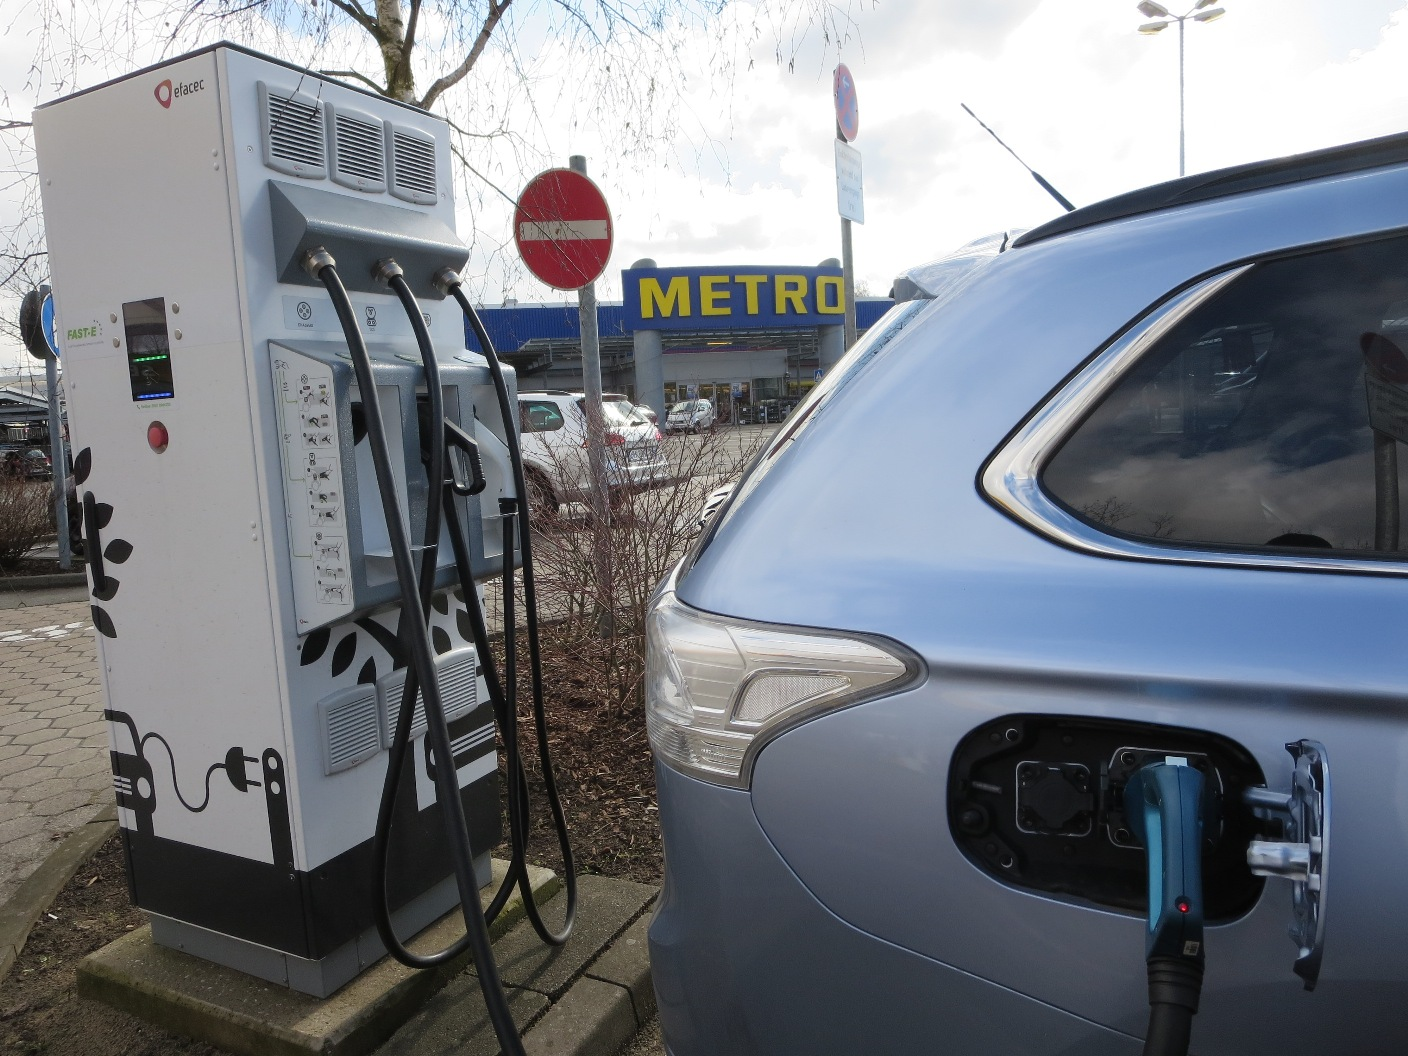 CHAdeMO bei Metro in Harburg, TNM nimmt 36 Ct pro Minute